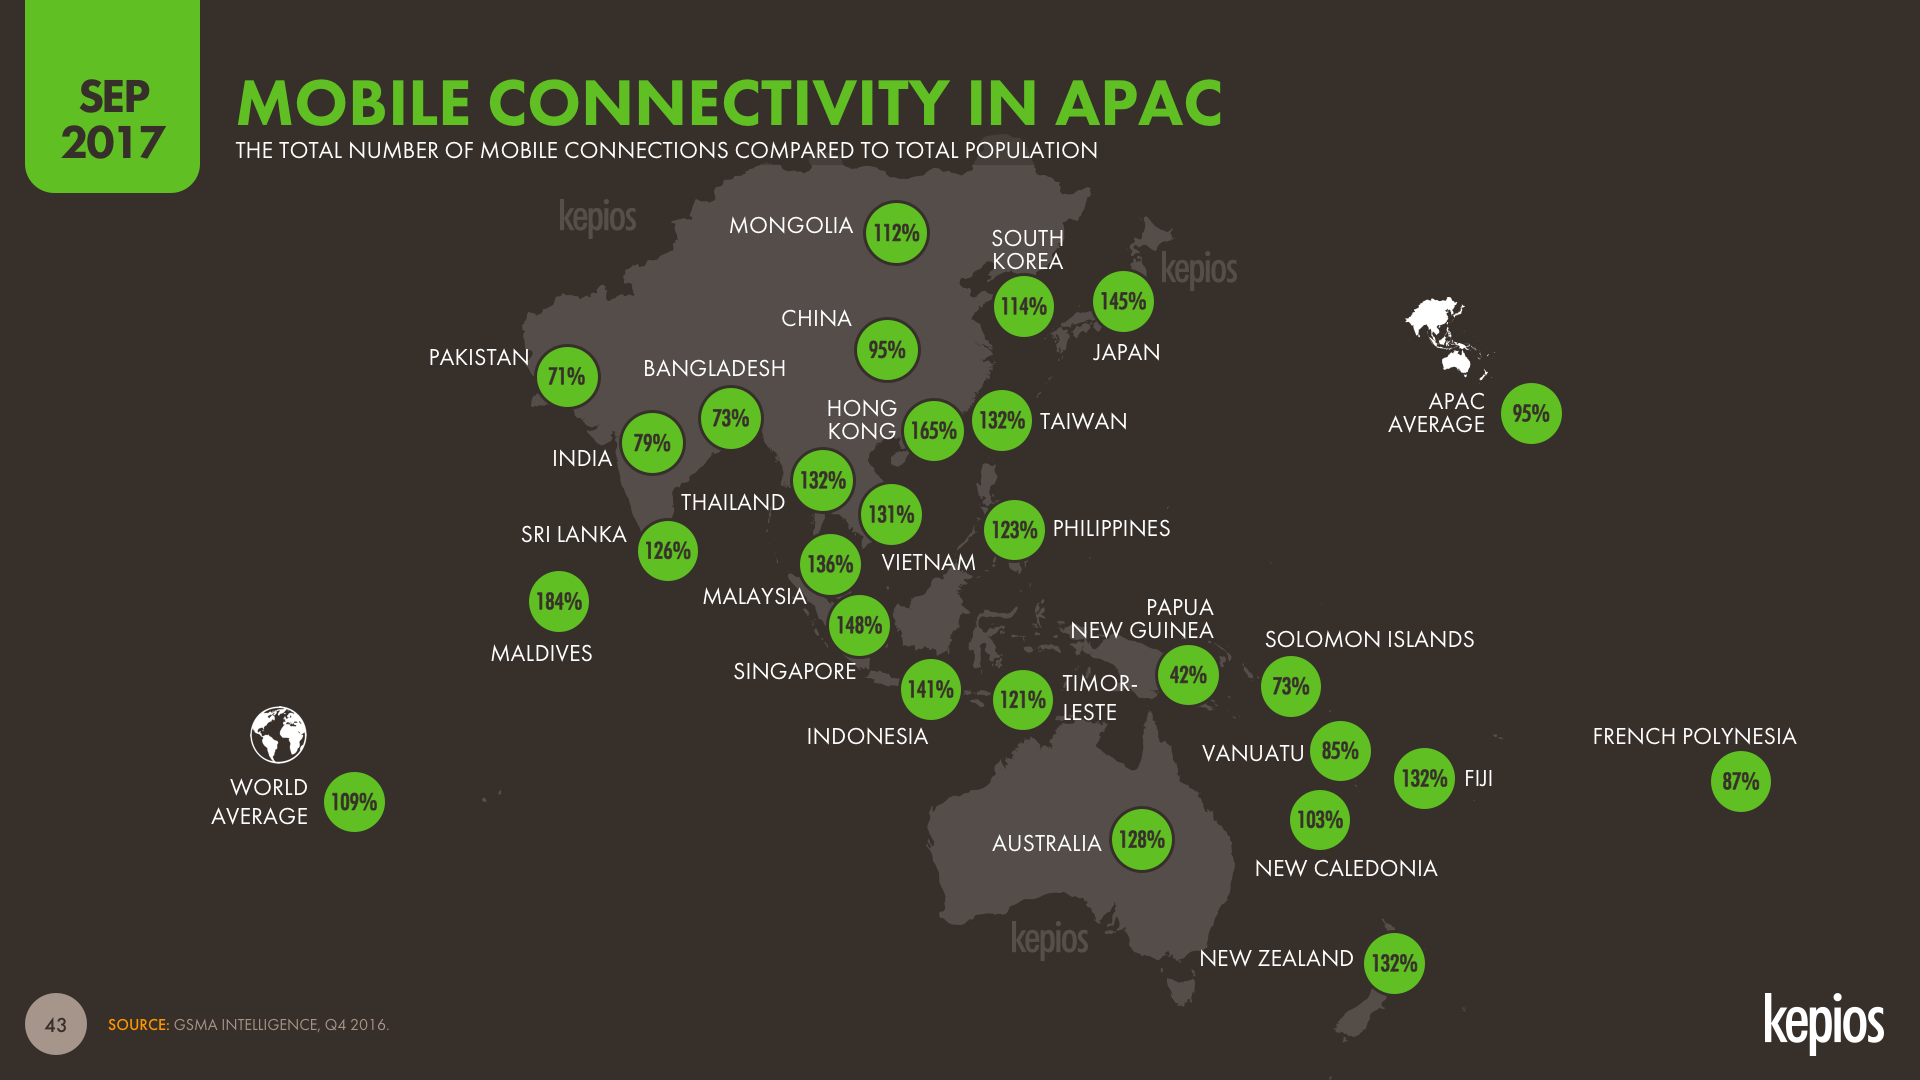 APAC Mobile Connectivity Map, Sep 2017